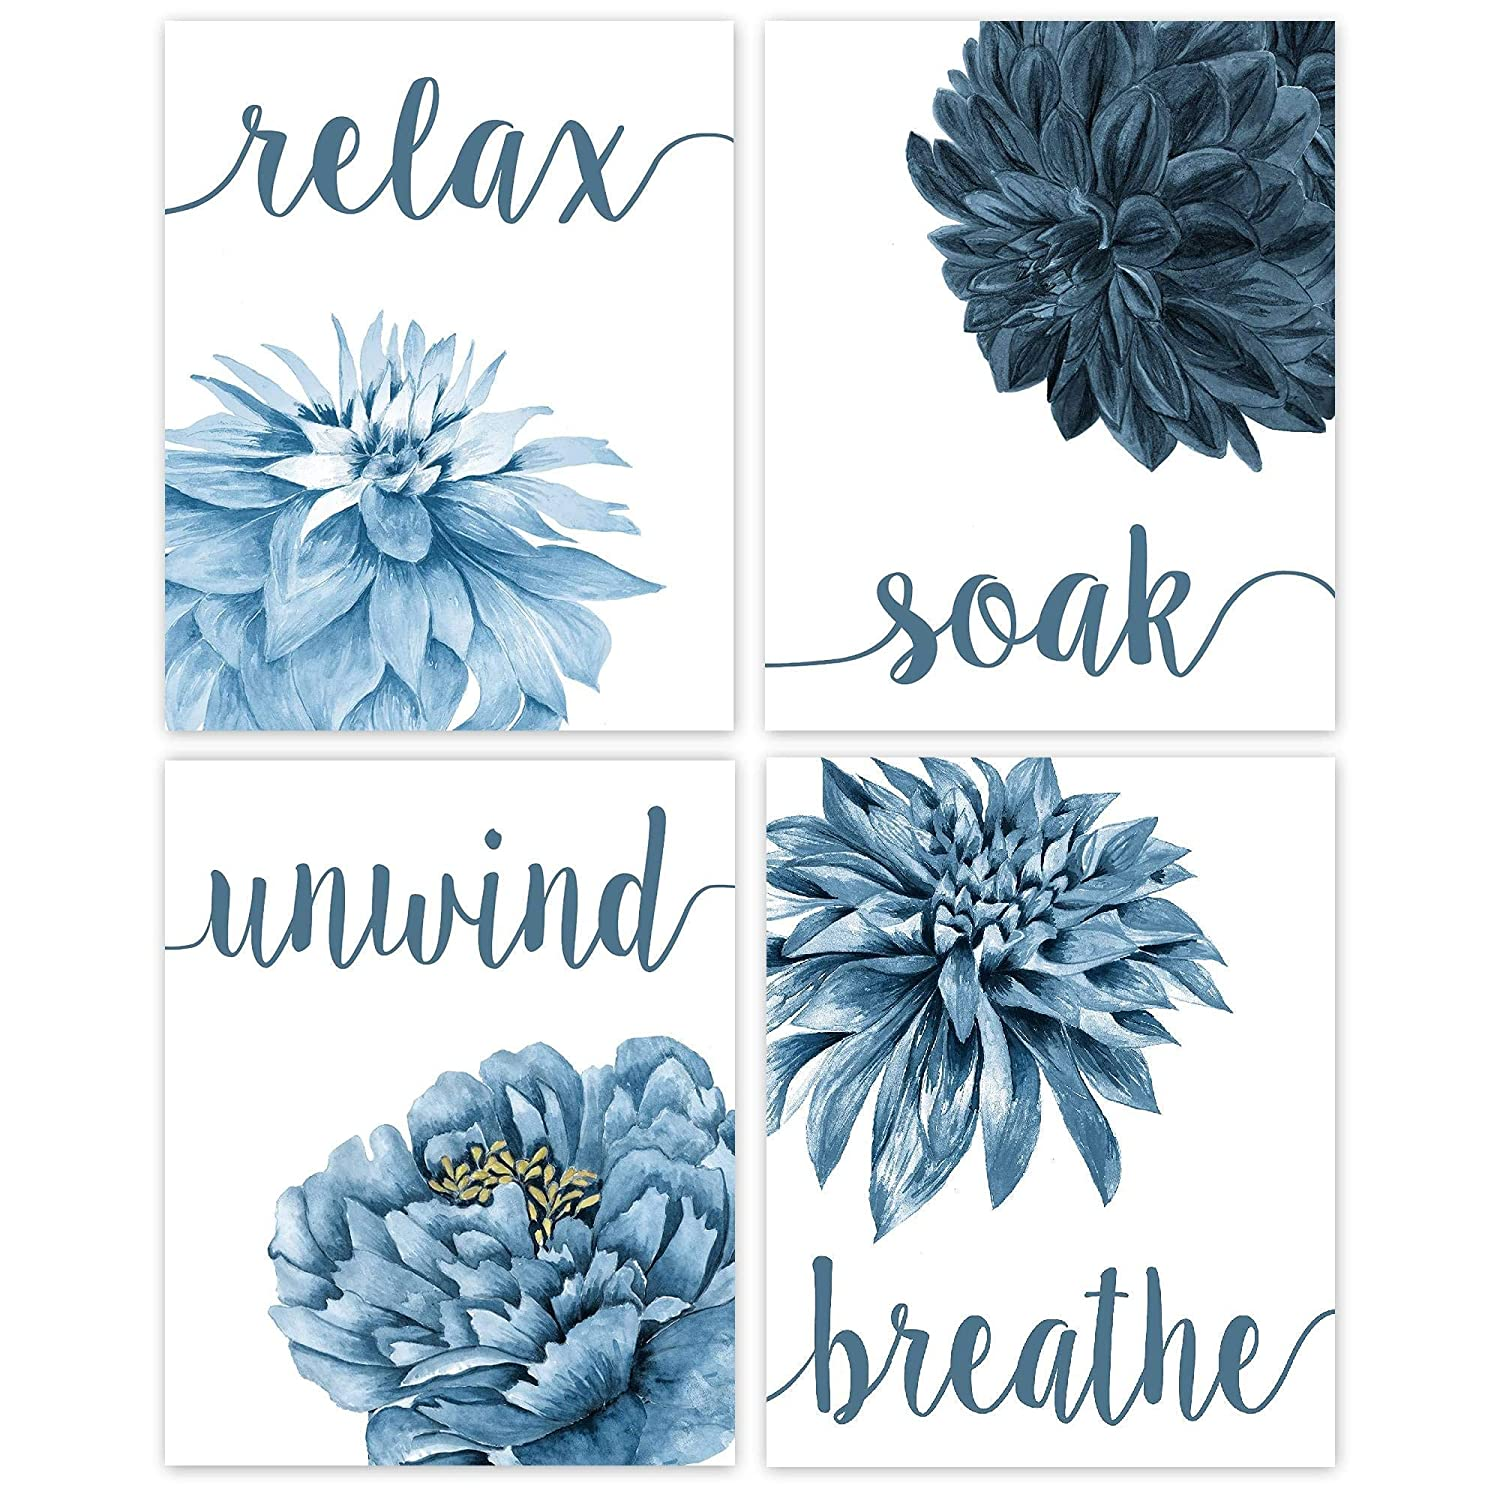 Relax, Soak, Unwind, Breathe Navy Blue Tone Bath Flower Poster Prints, Set of 4 (8x10) Unframed Photos, Wall Art Decor Gifts Under 20 for College, Home, College Student, Teacher, Floral Fan